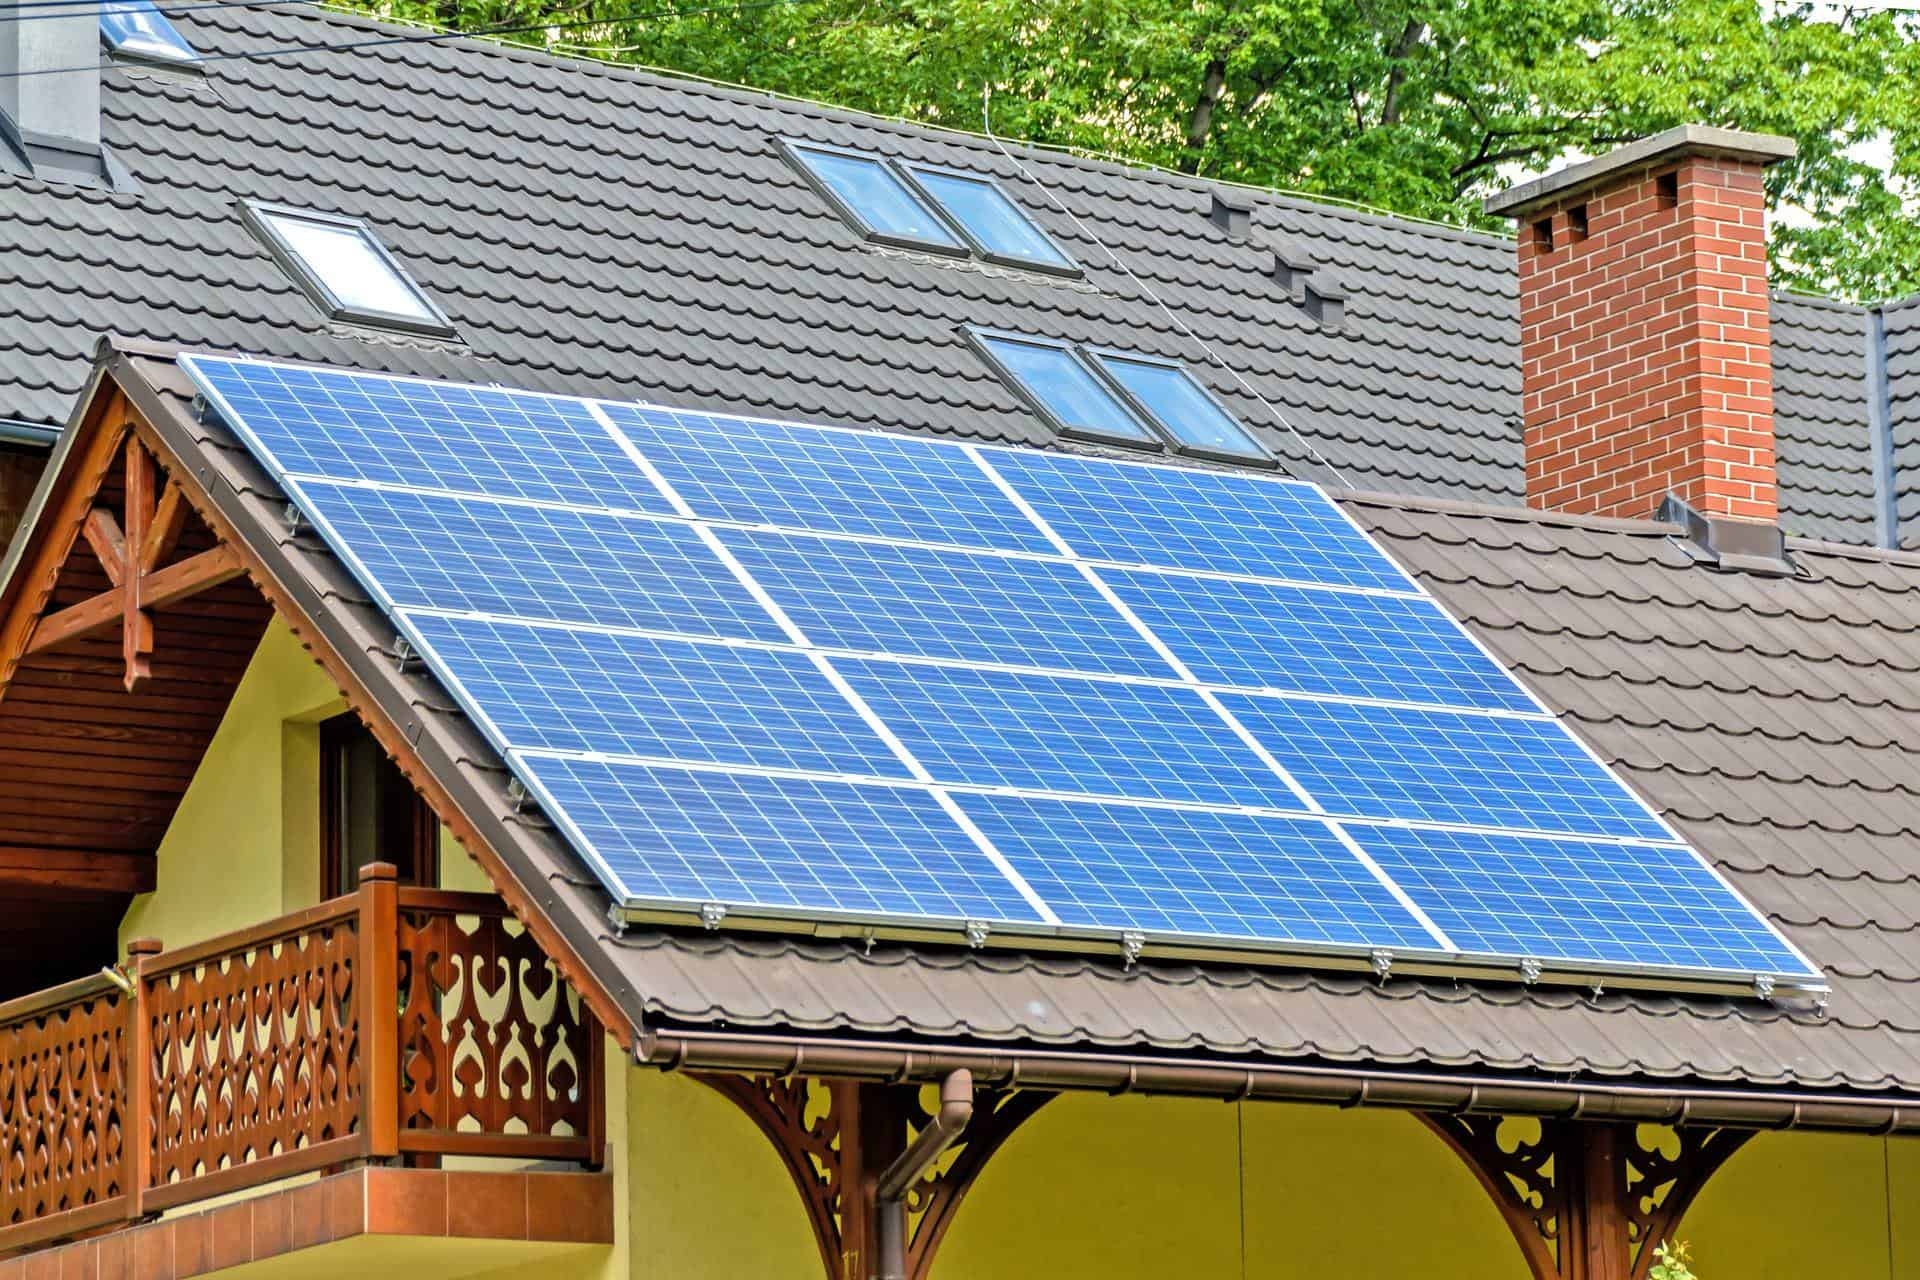 Photograph of solar panels on the roof of a suburban home